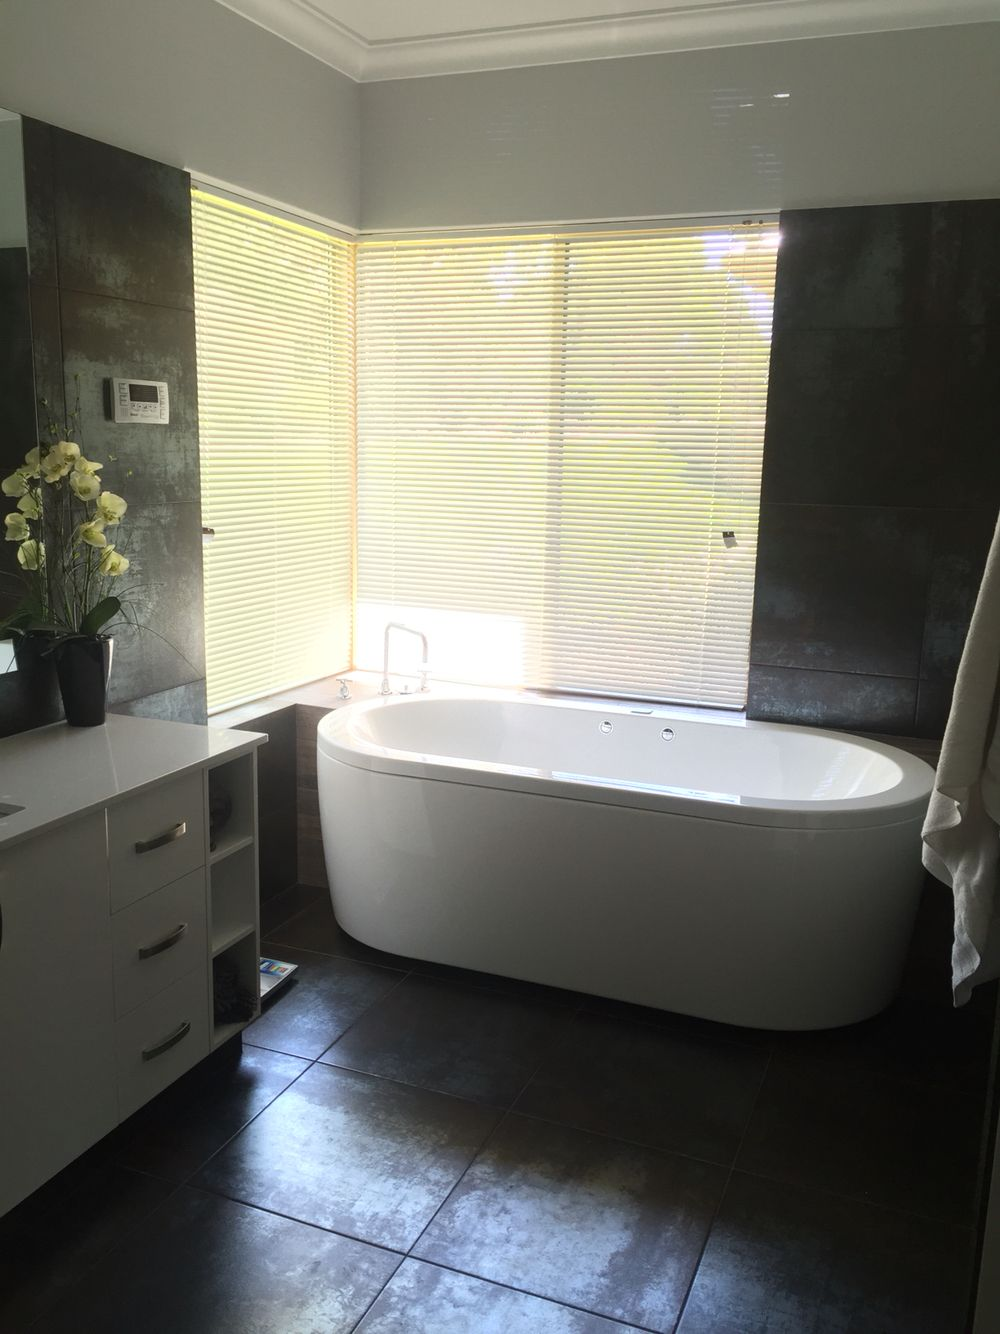 Antares tile and spa bath | Ideas for the House | Pinterest | Spa ...